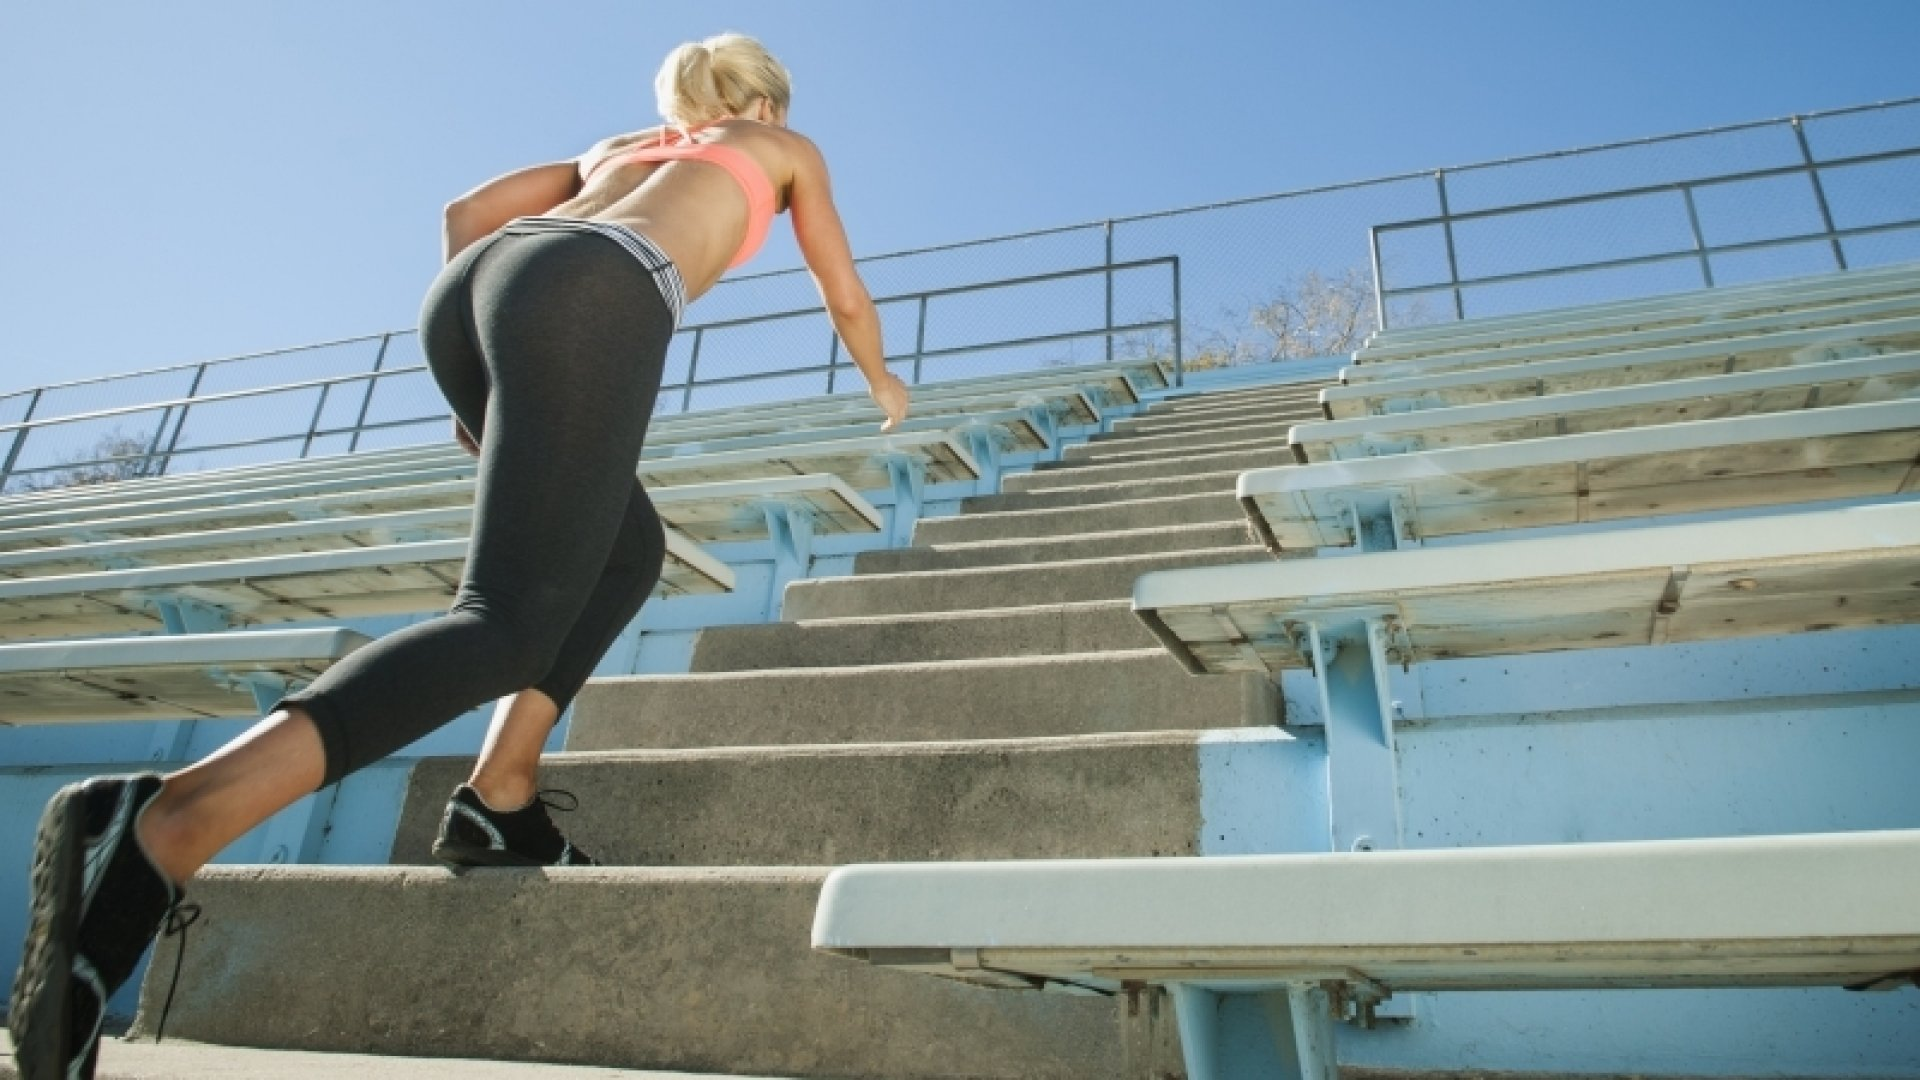 7 Surprising Ways to Get Super Motivated Right Now